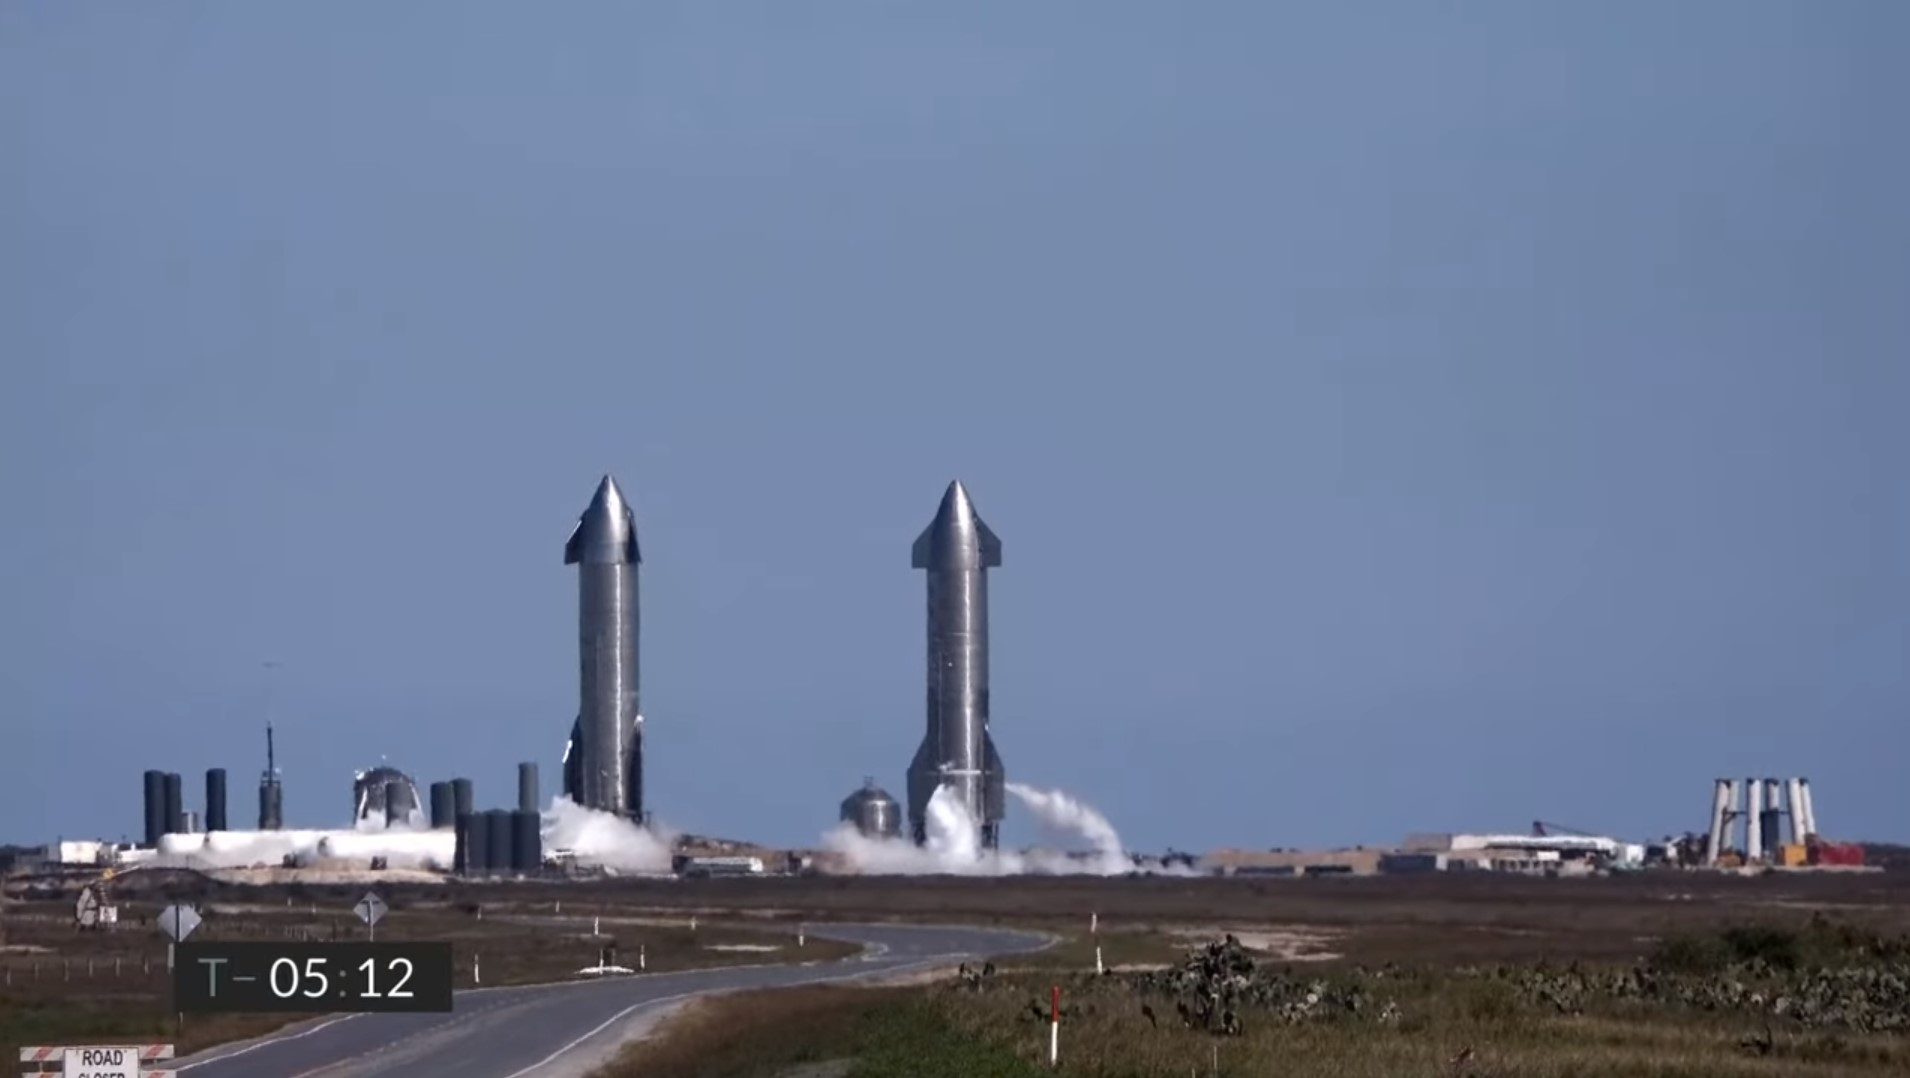 Starship SN9 launch with SN10 on a pad nearby